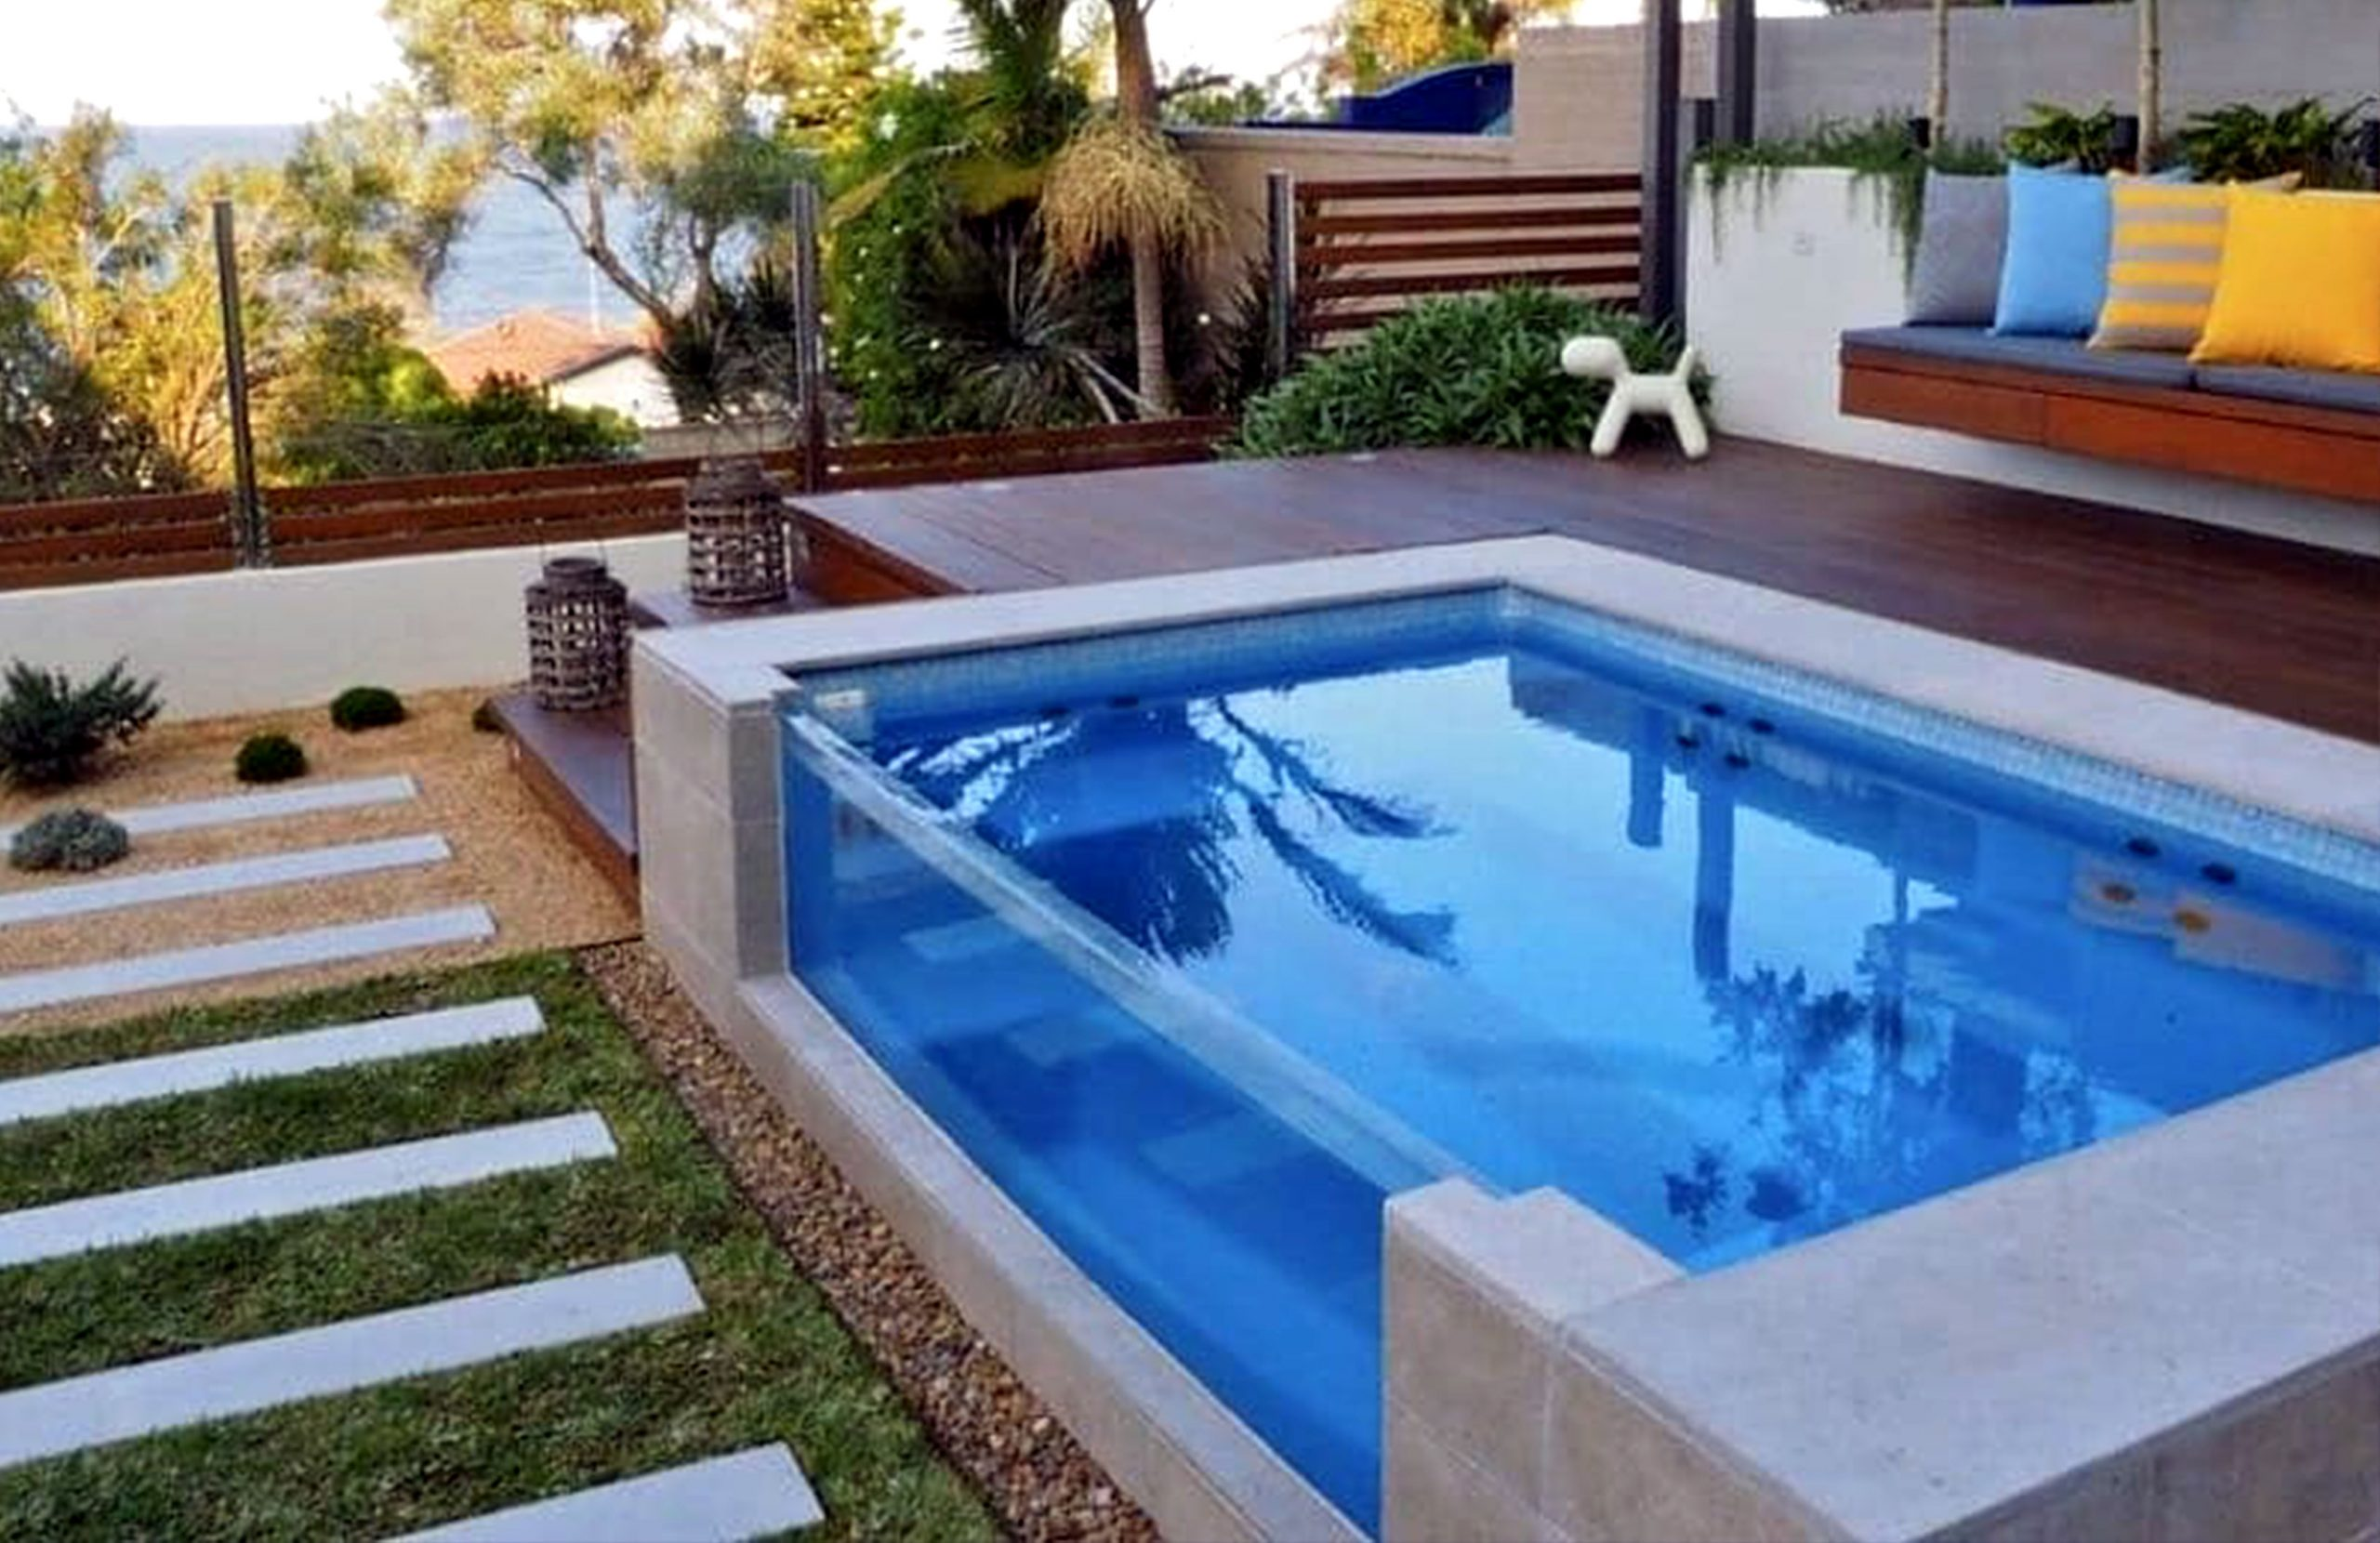 Outdoors pools